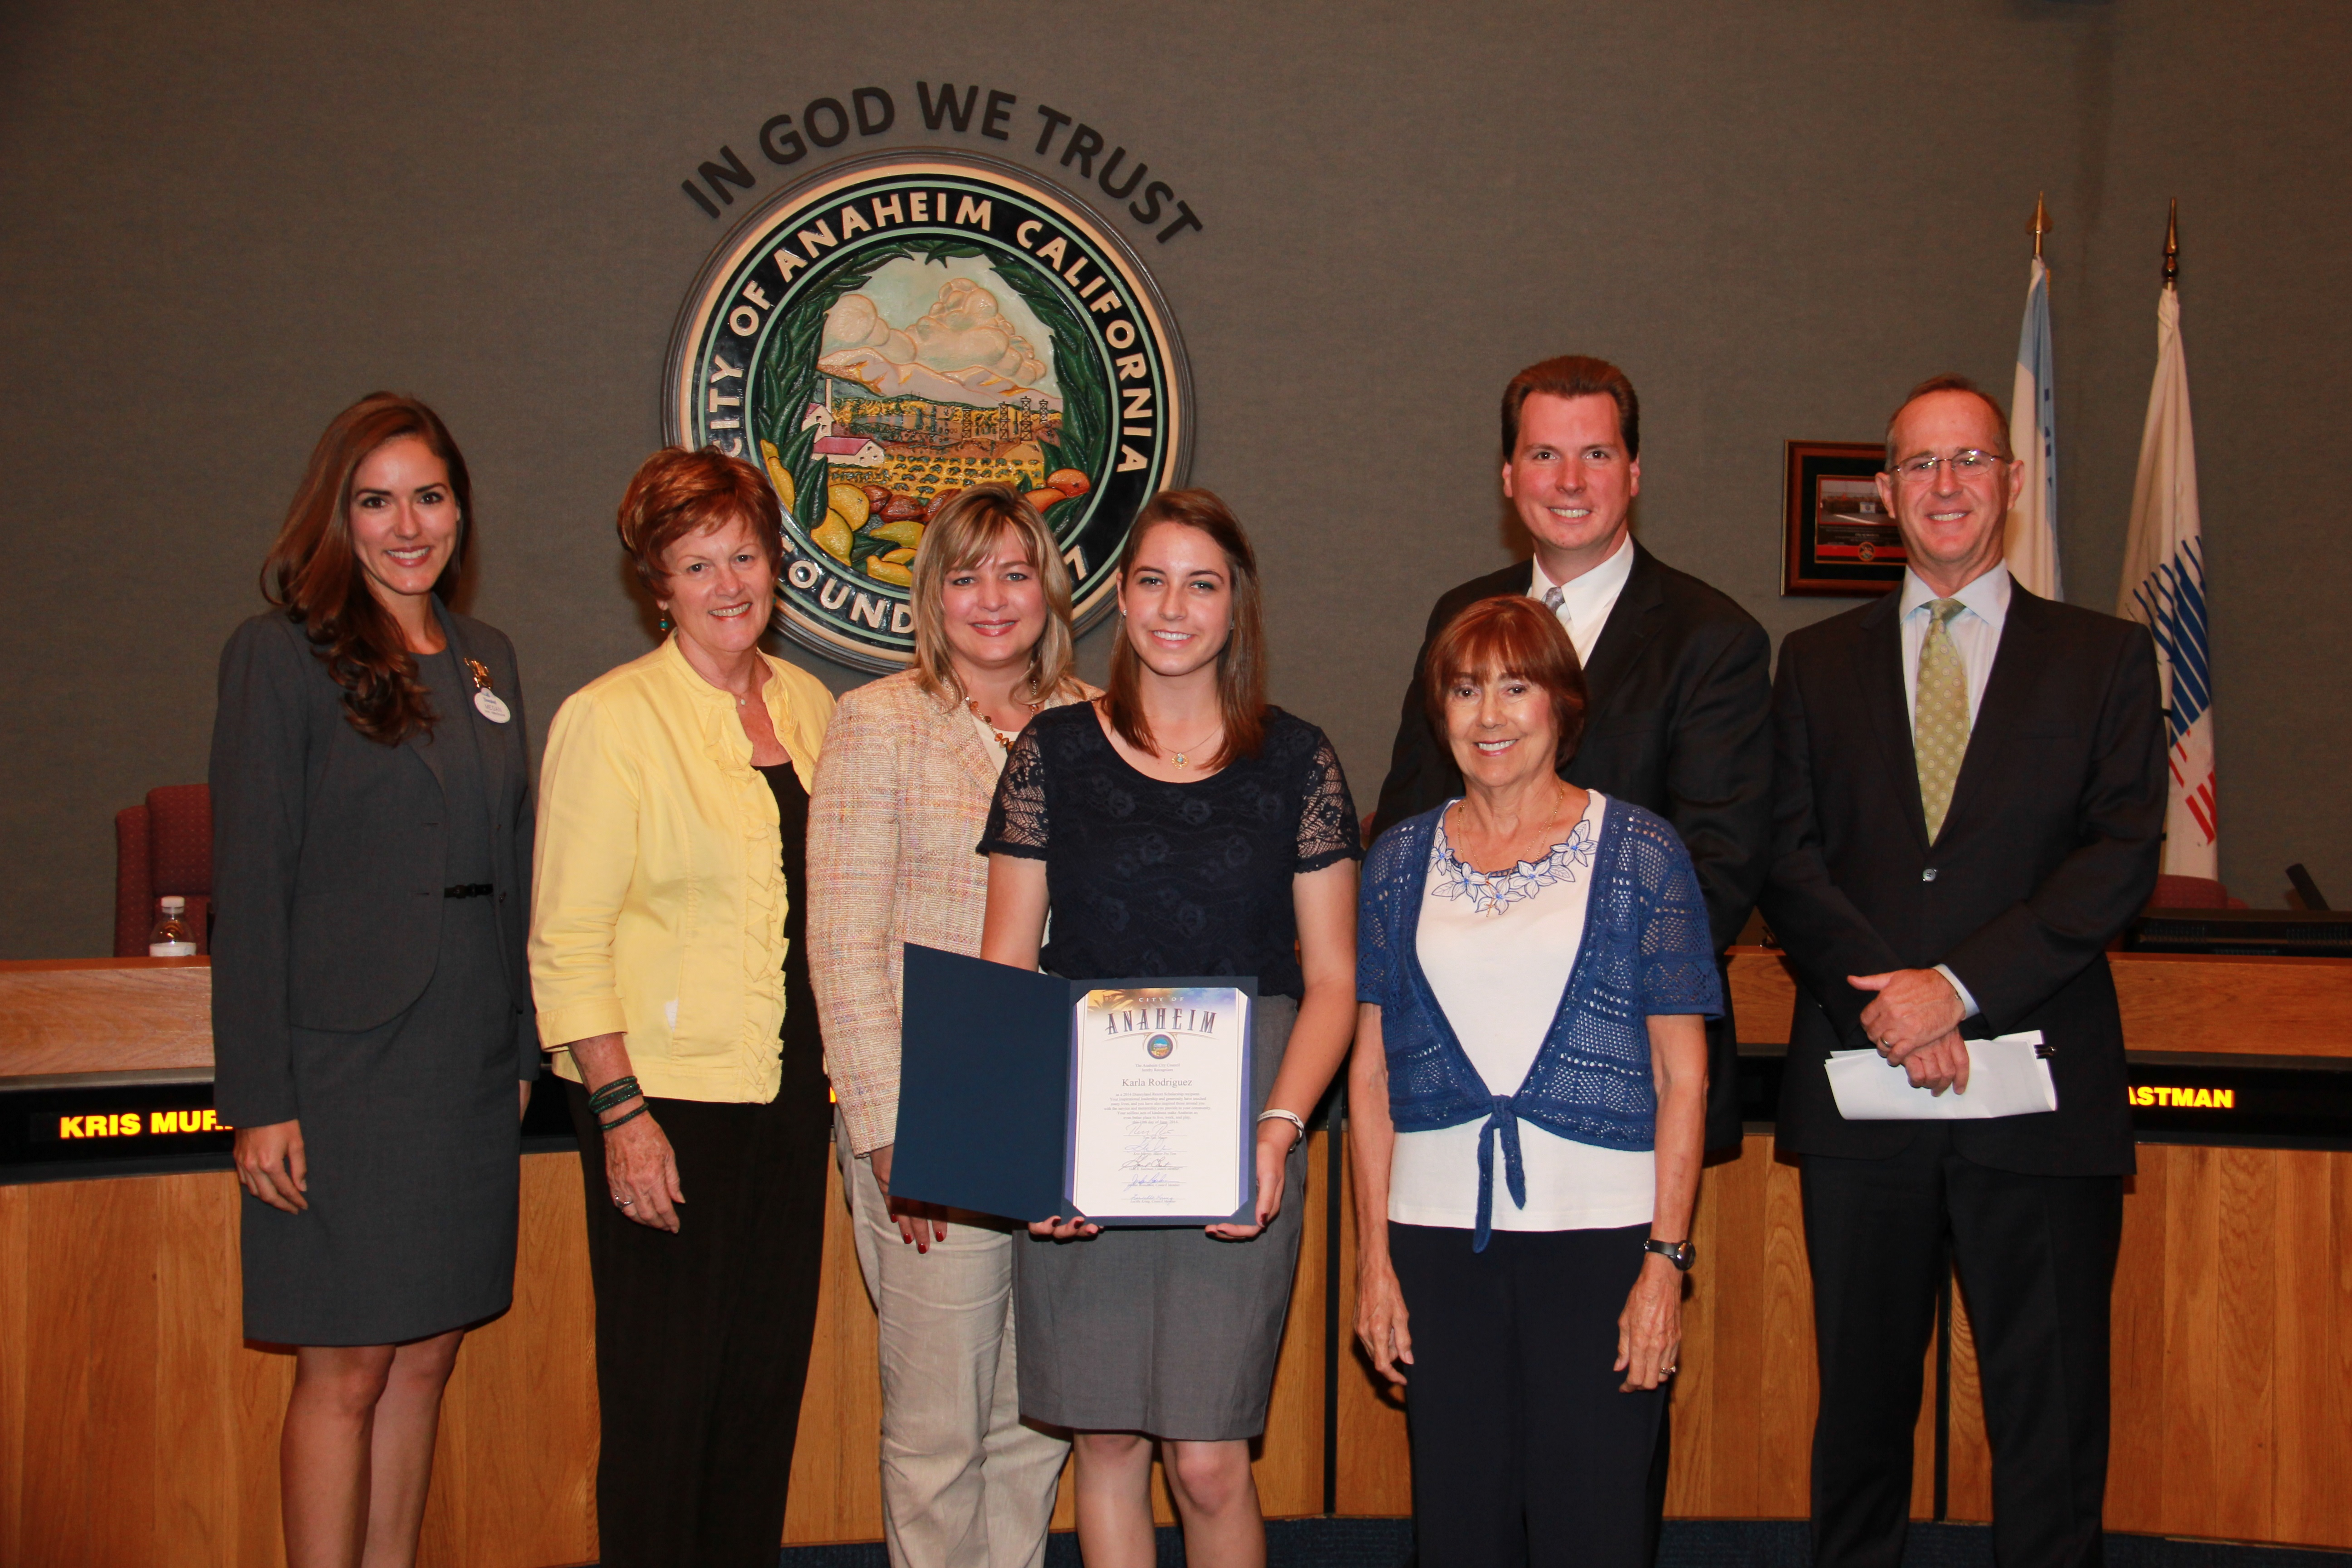 Teenage girl receiving an award from the City Council